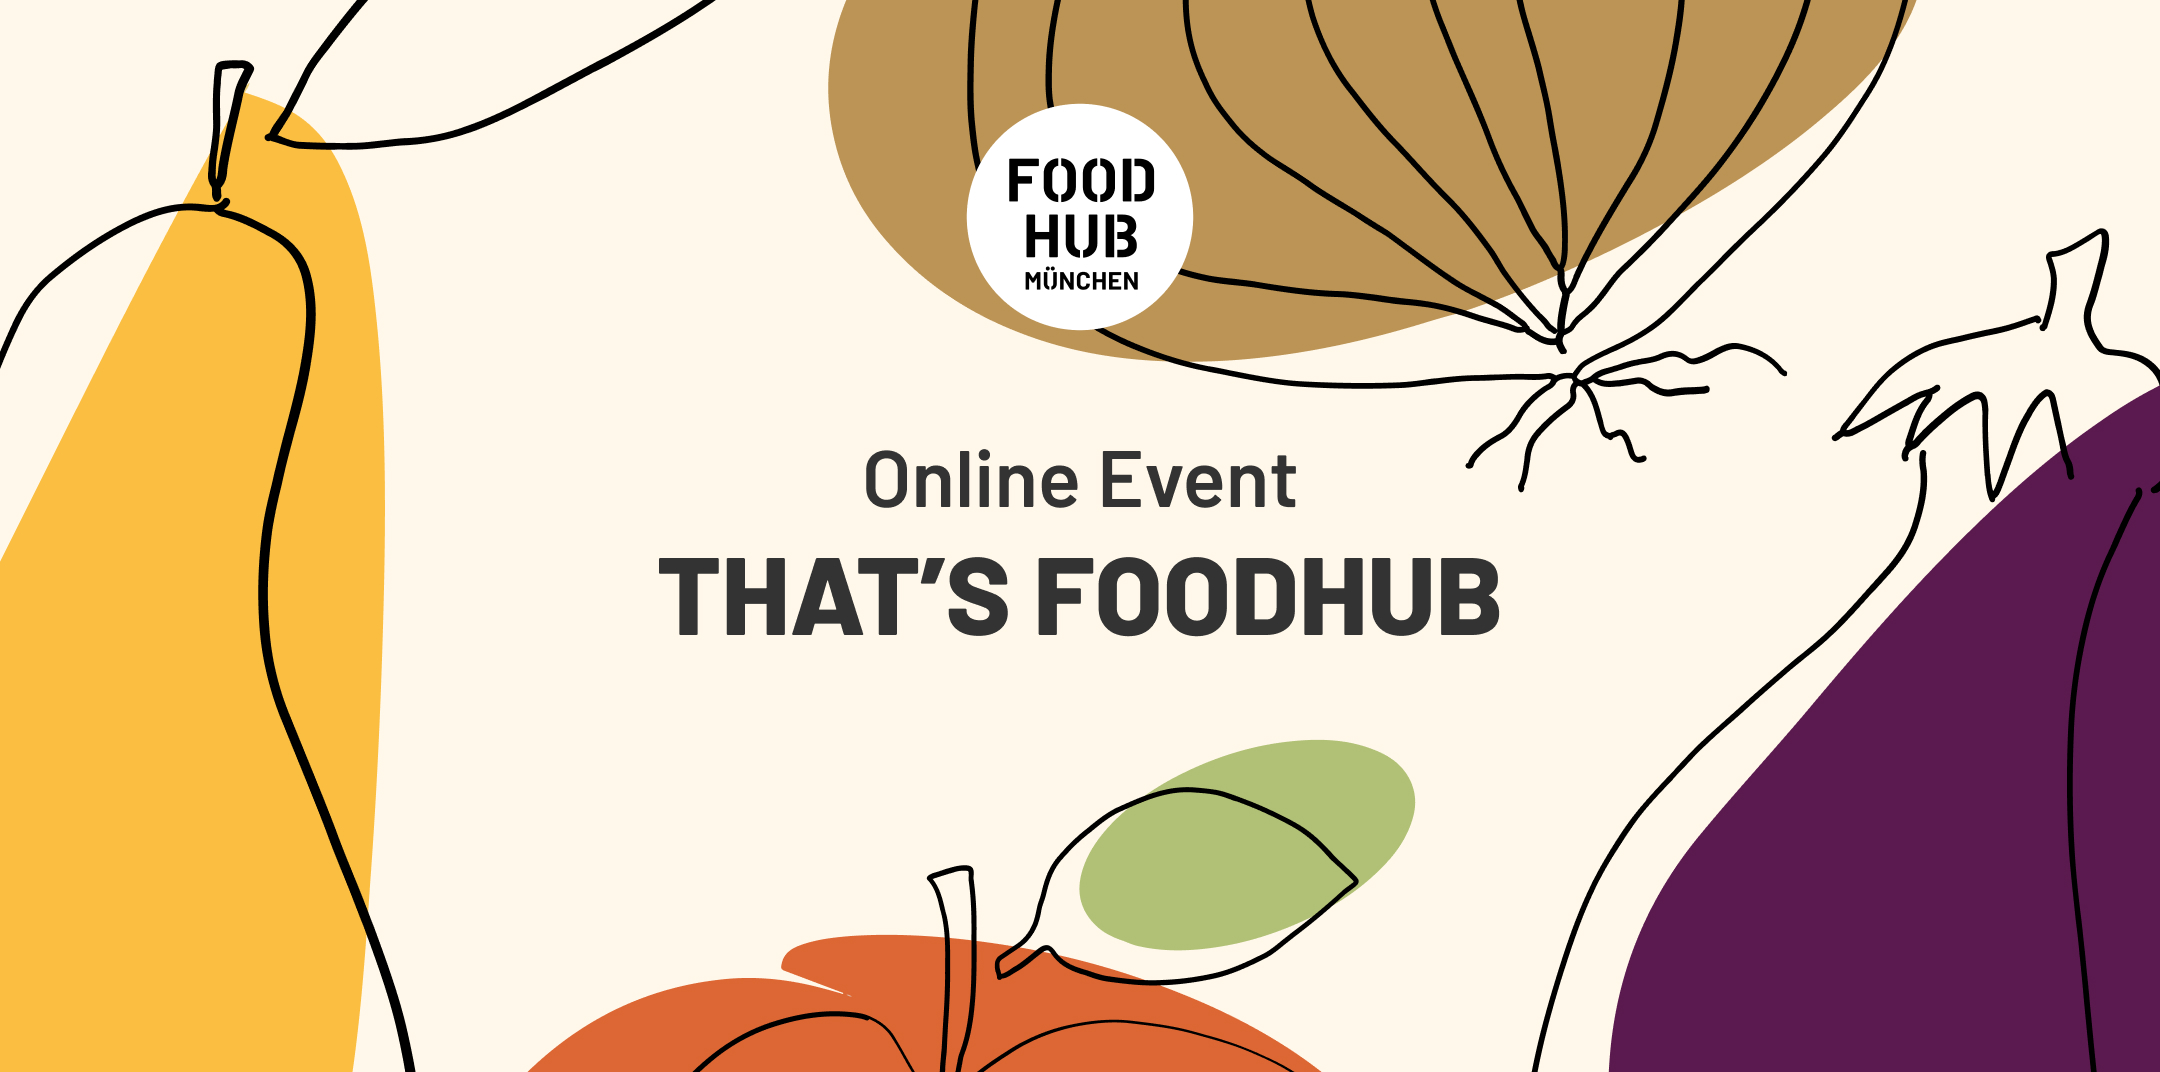 Online Event That's FoodHub